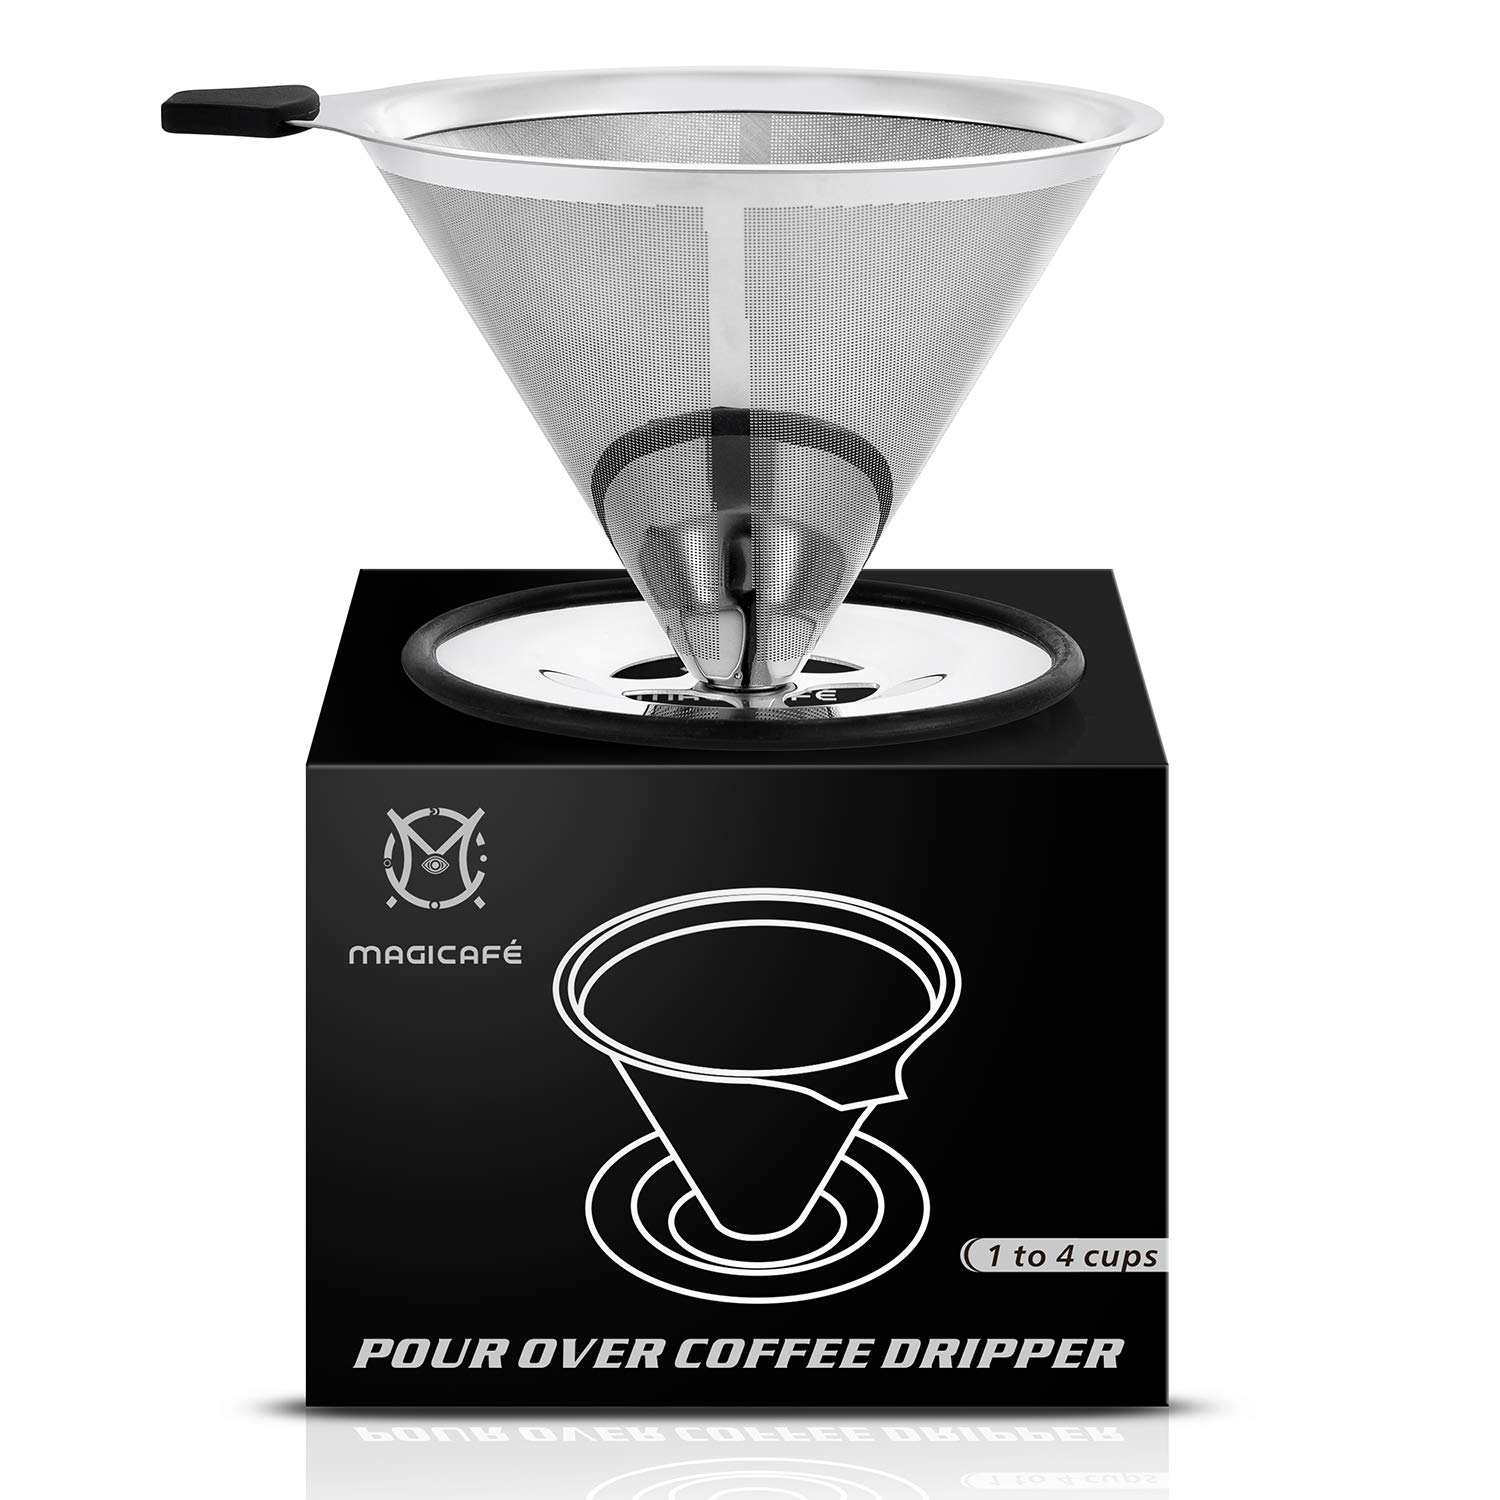 Magicafé Pour Over Coffee Dripper - Stainless Steel Micro mesh Filter Fits Most Travel Mugs,Tea And Coffee Cups